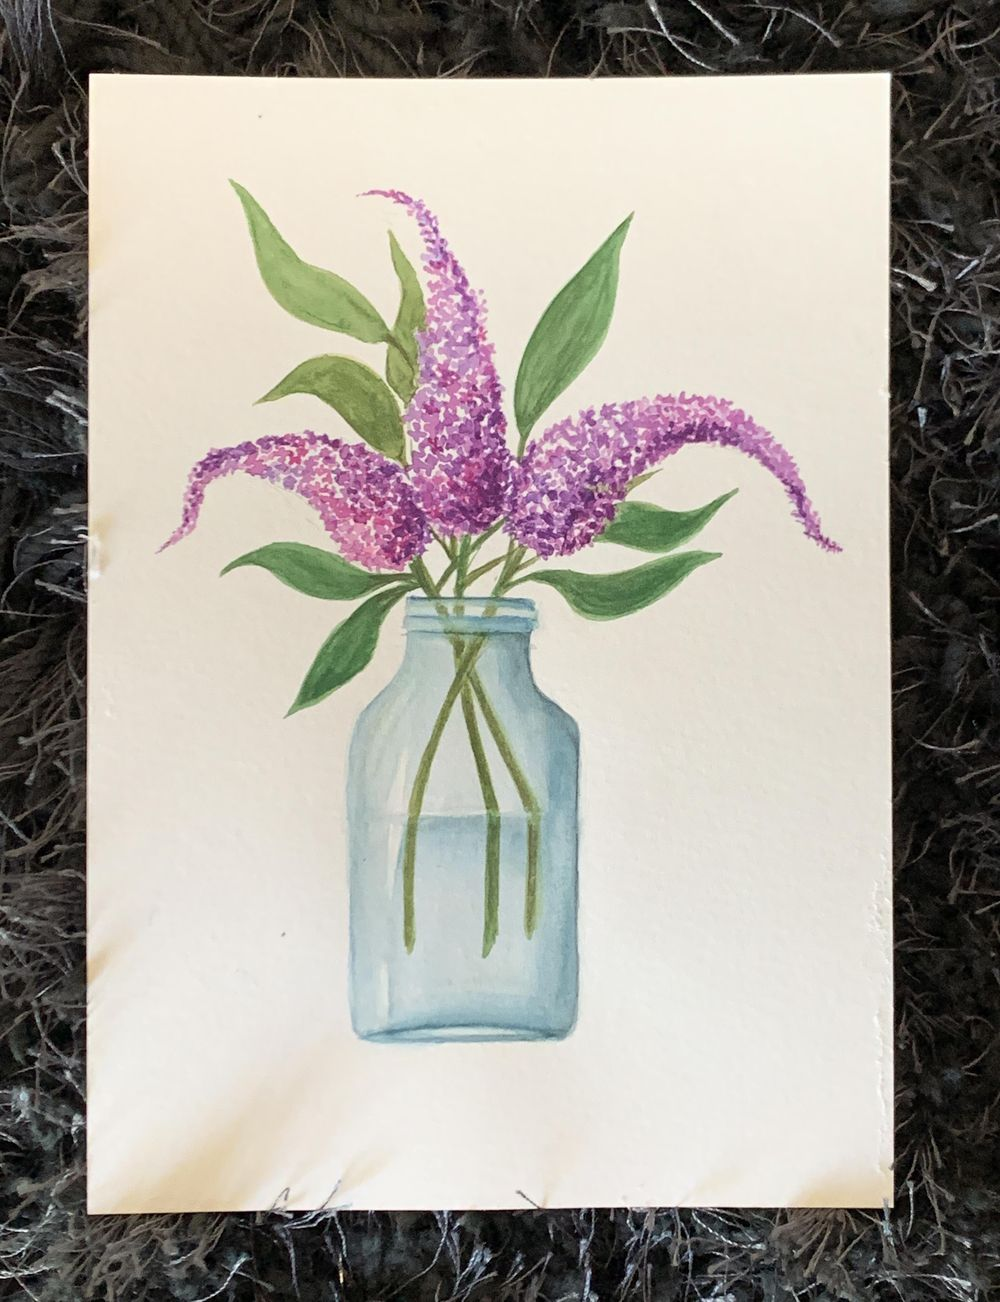 Lilacs - image 1 - student project